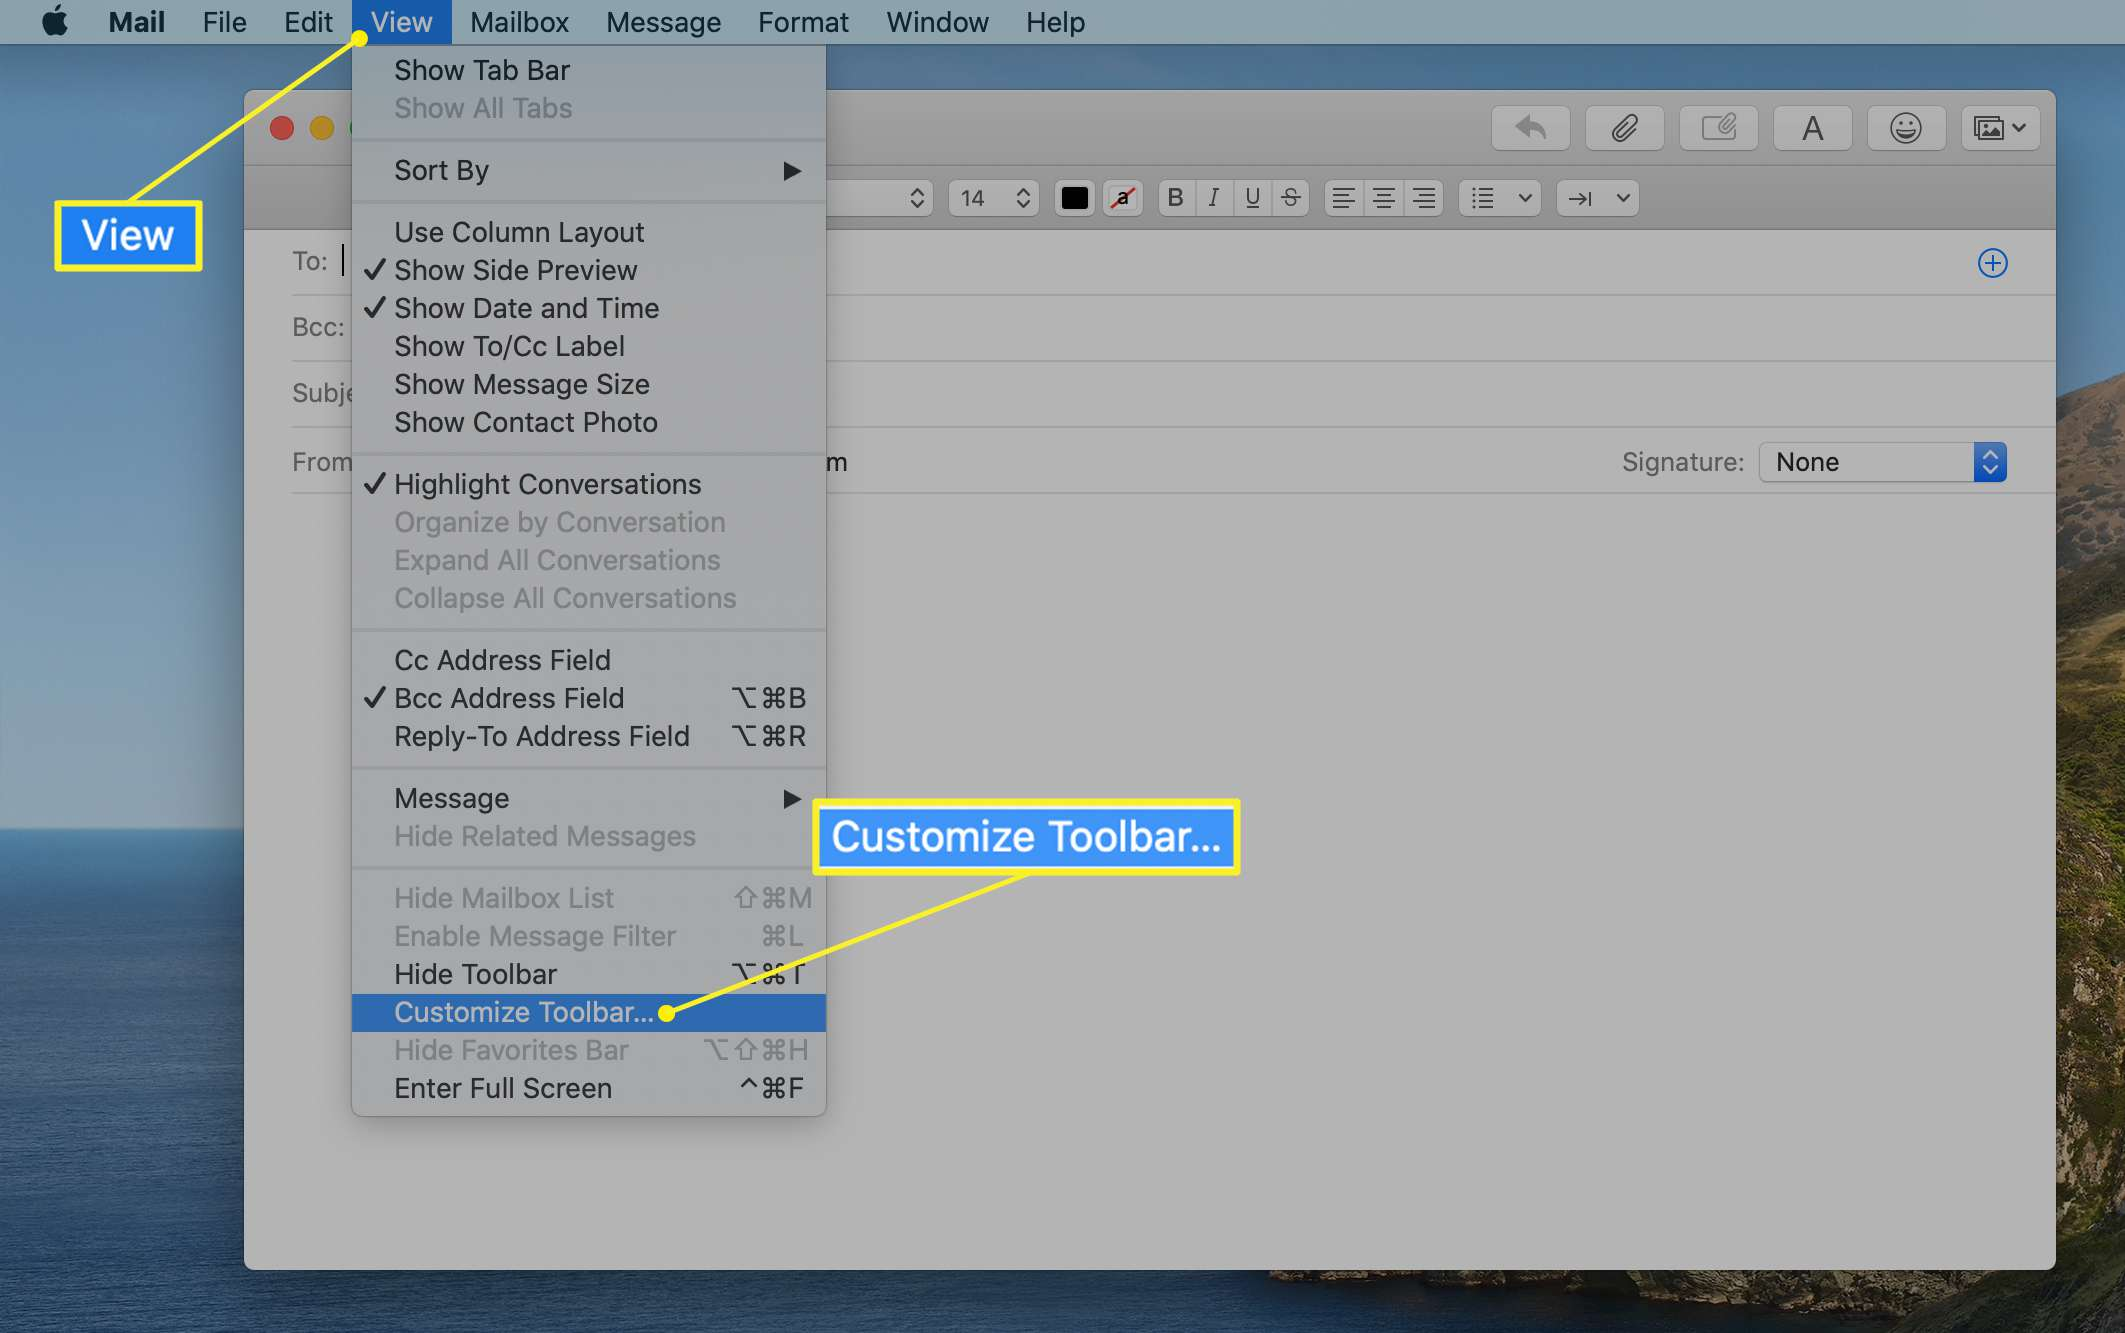 The Mail View menu with Customize Toolbar highlighted